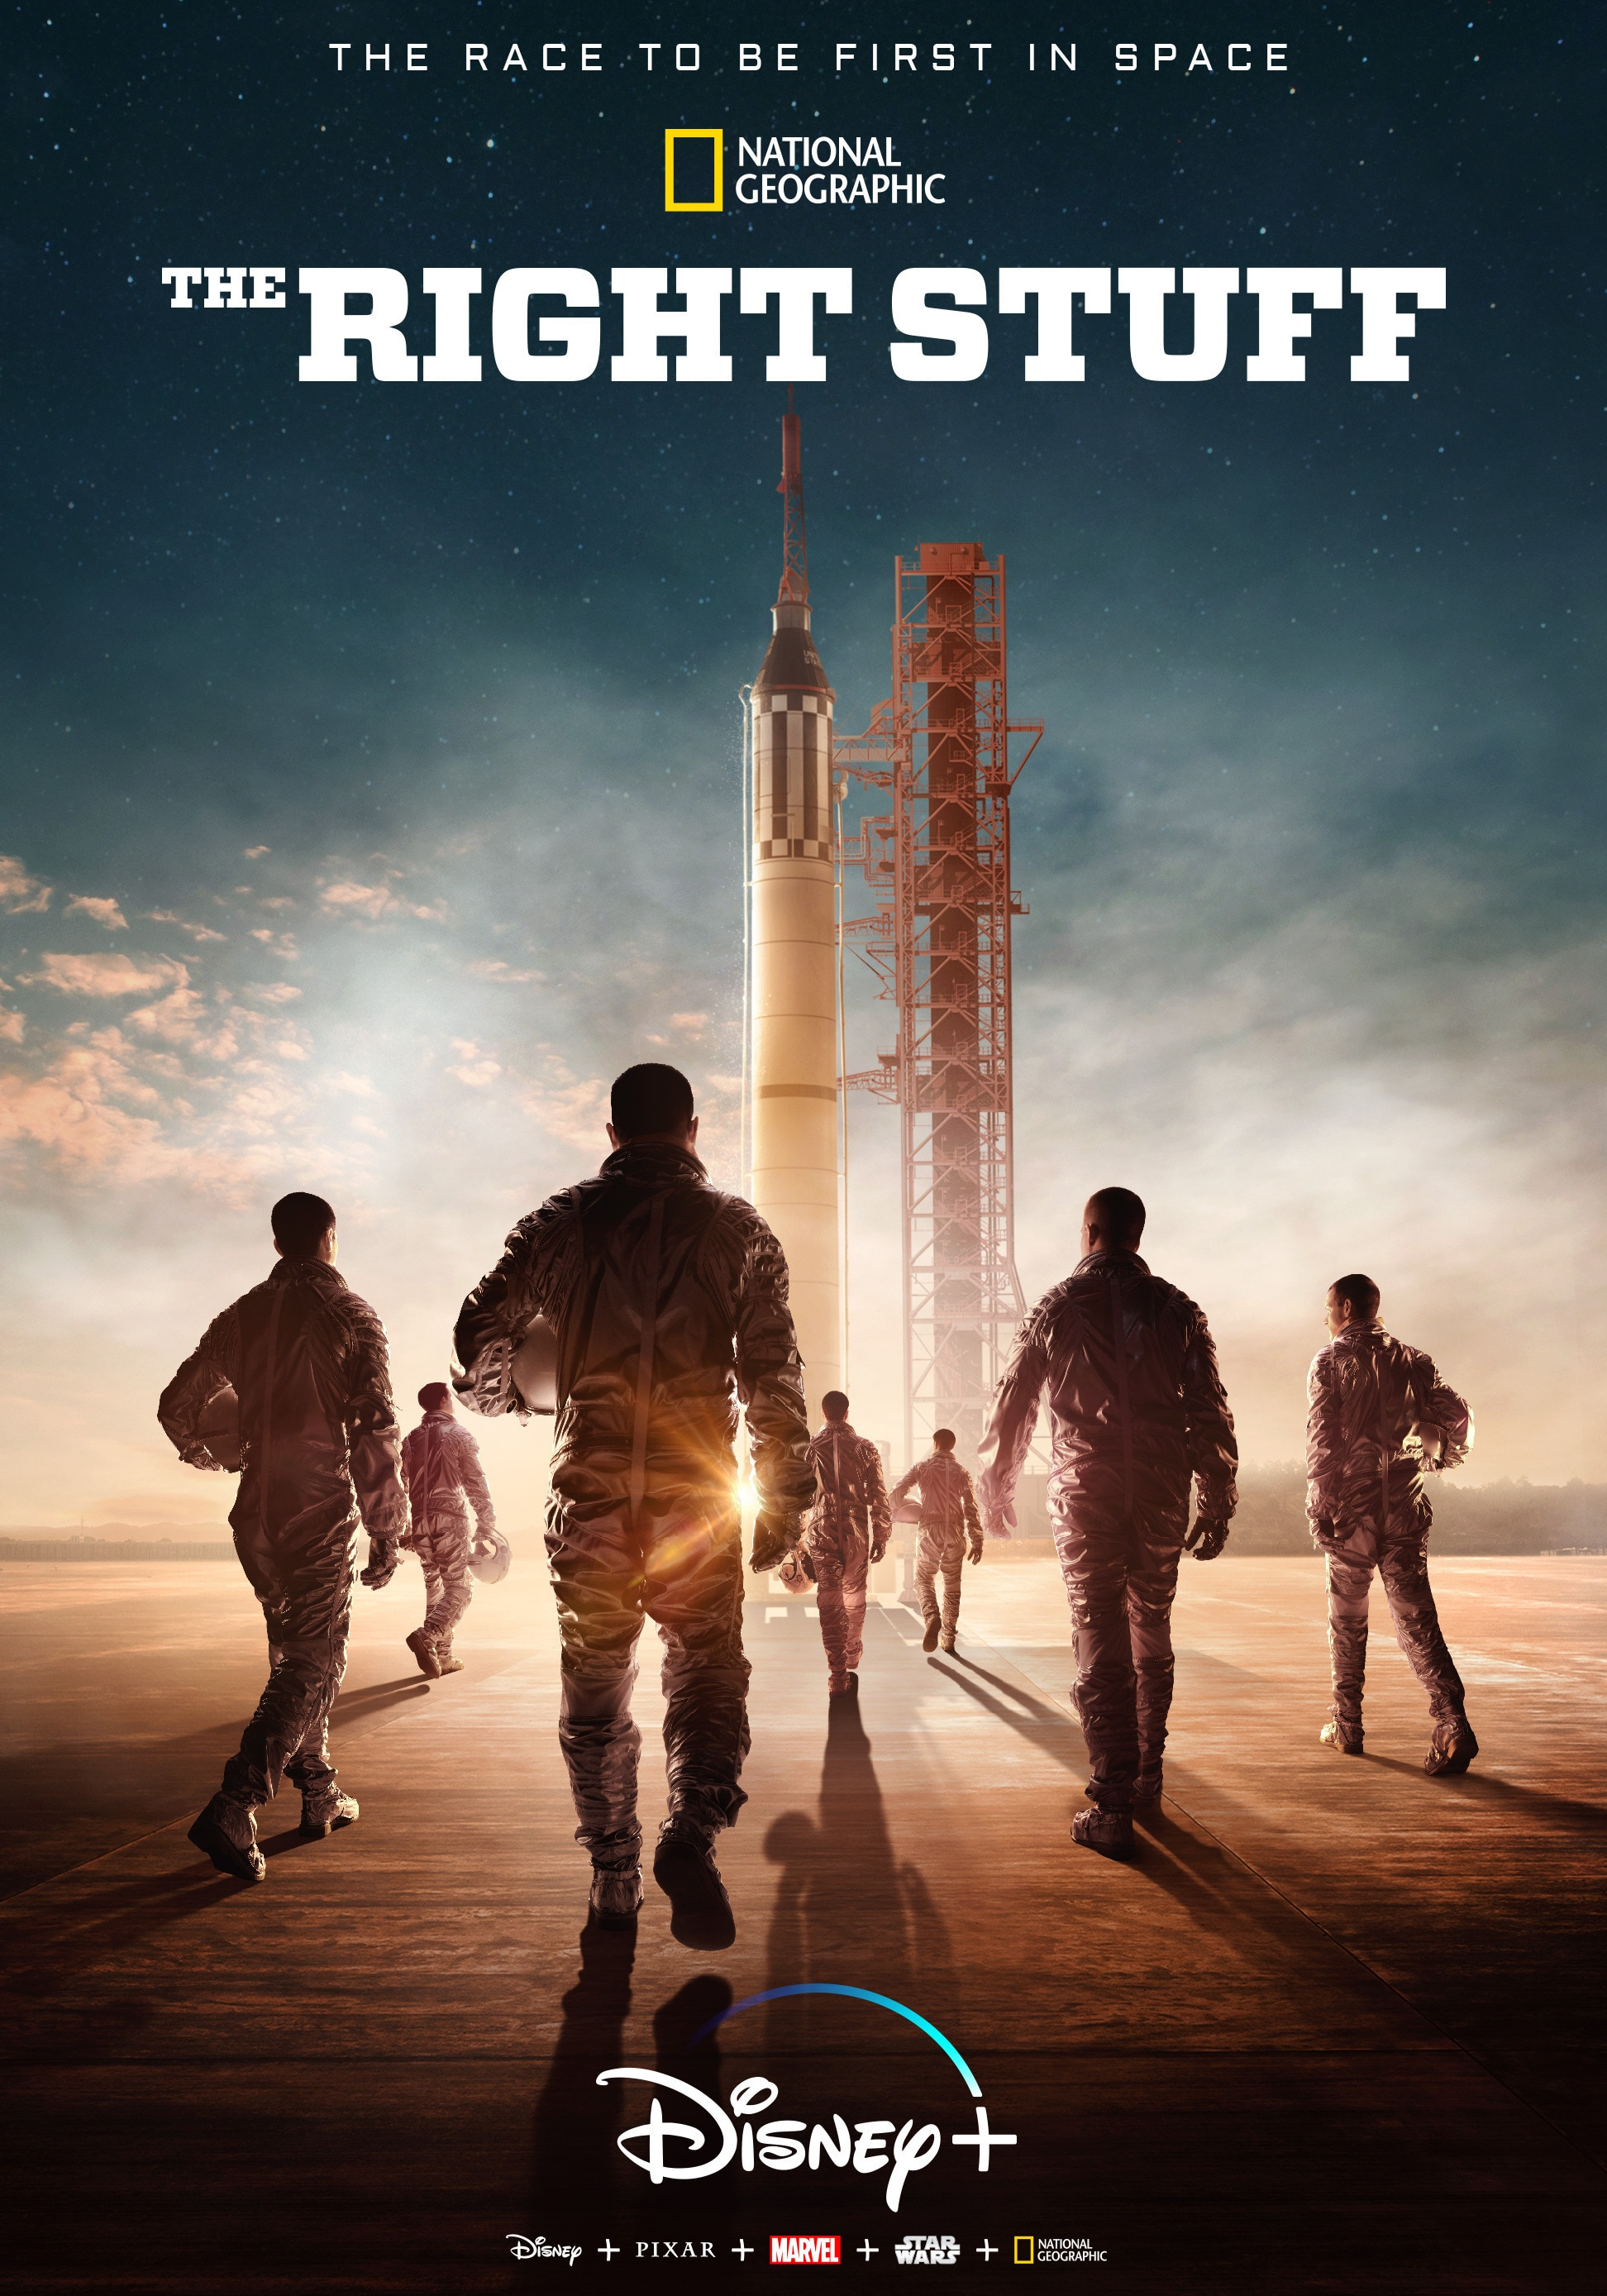 The Right Stuff on Disney+